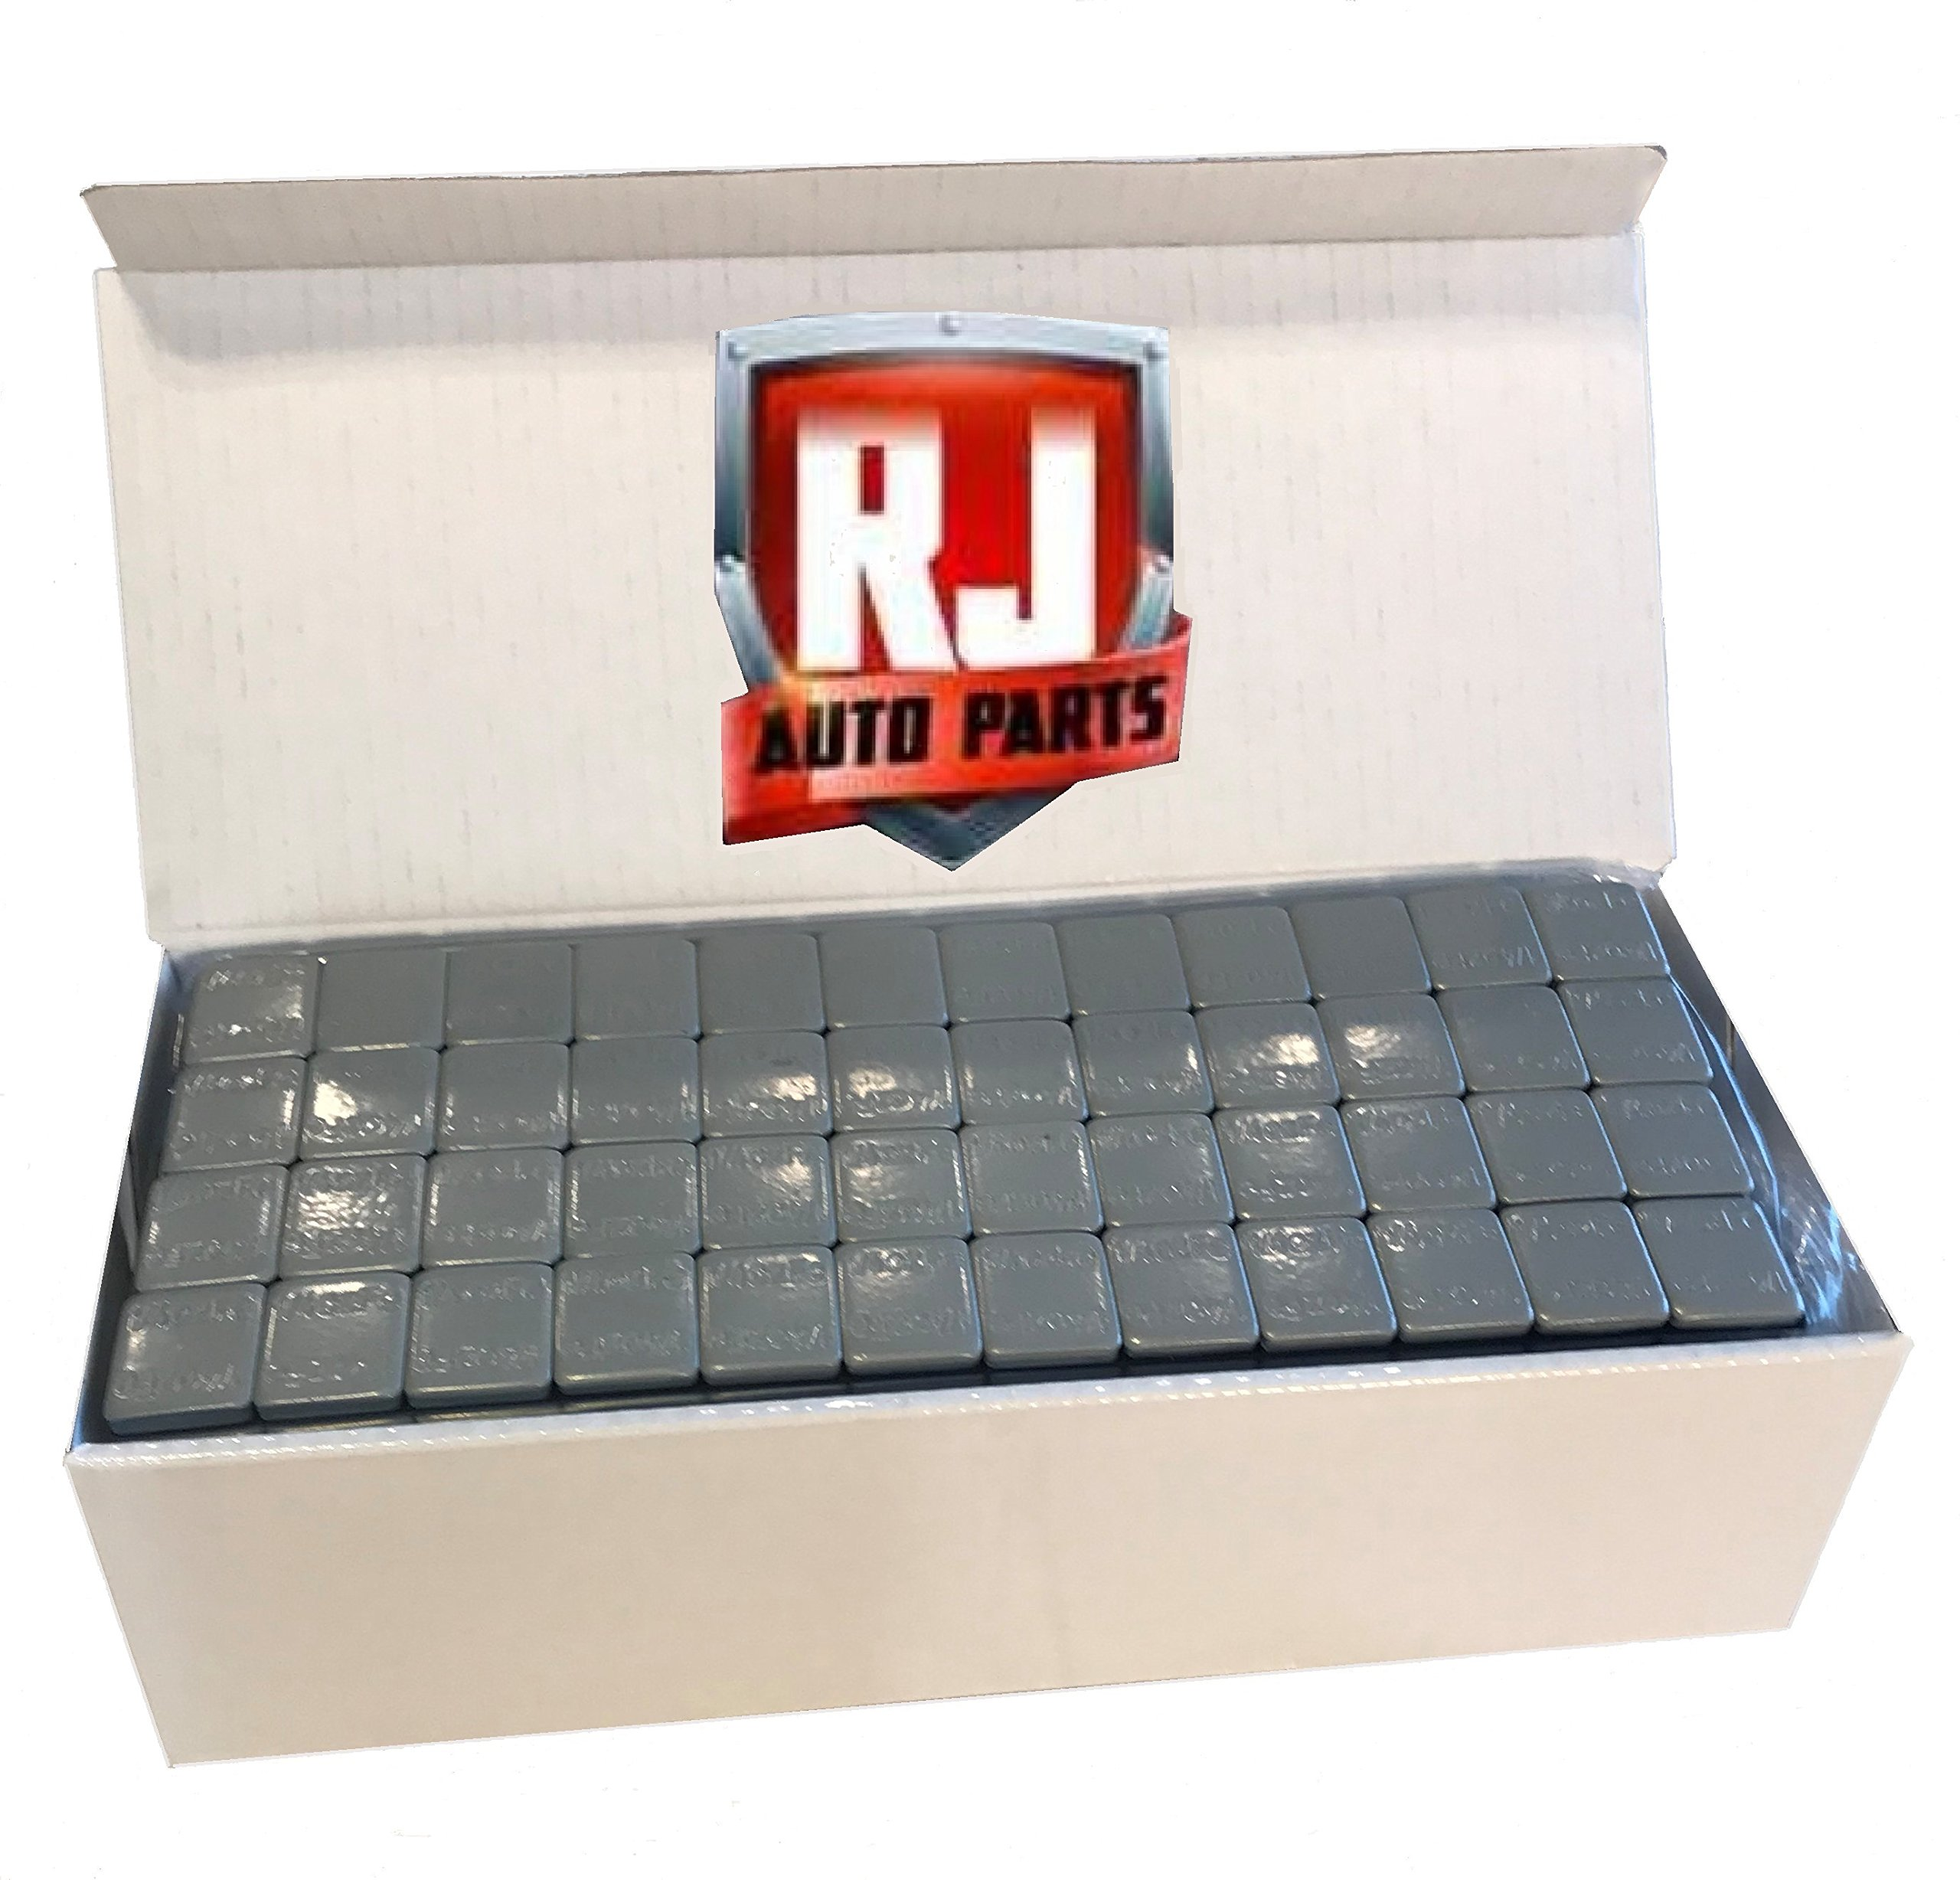 6 Boxes Wheel Weights, Grey .25 oz. Stick-On Adhesive Tape, Lead Free (54 lbs) 3456 Pieces by RJ Auto Parts